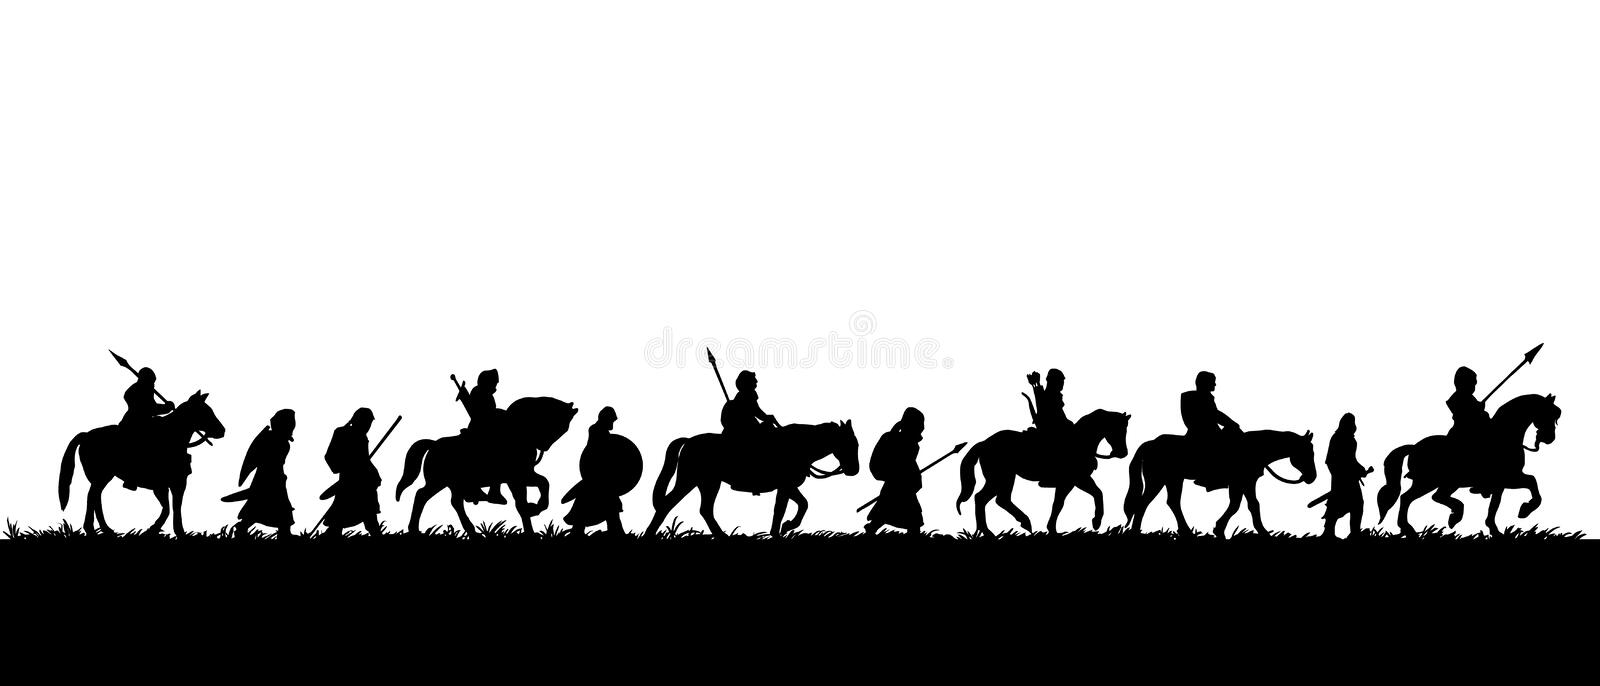 Silhouette of group of medieval warriors on the expedition stock illustration